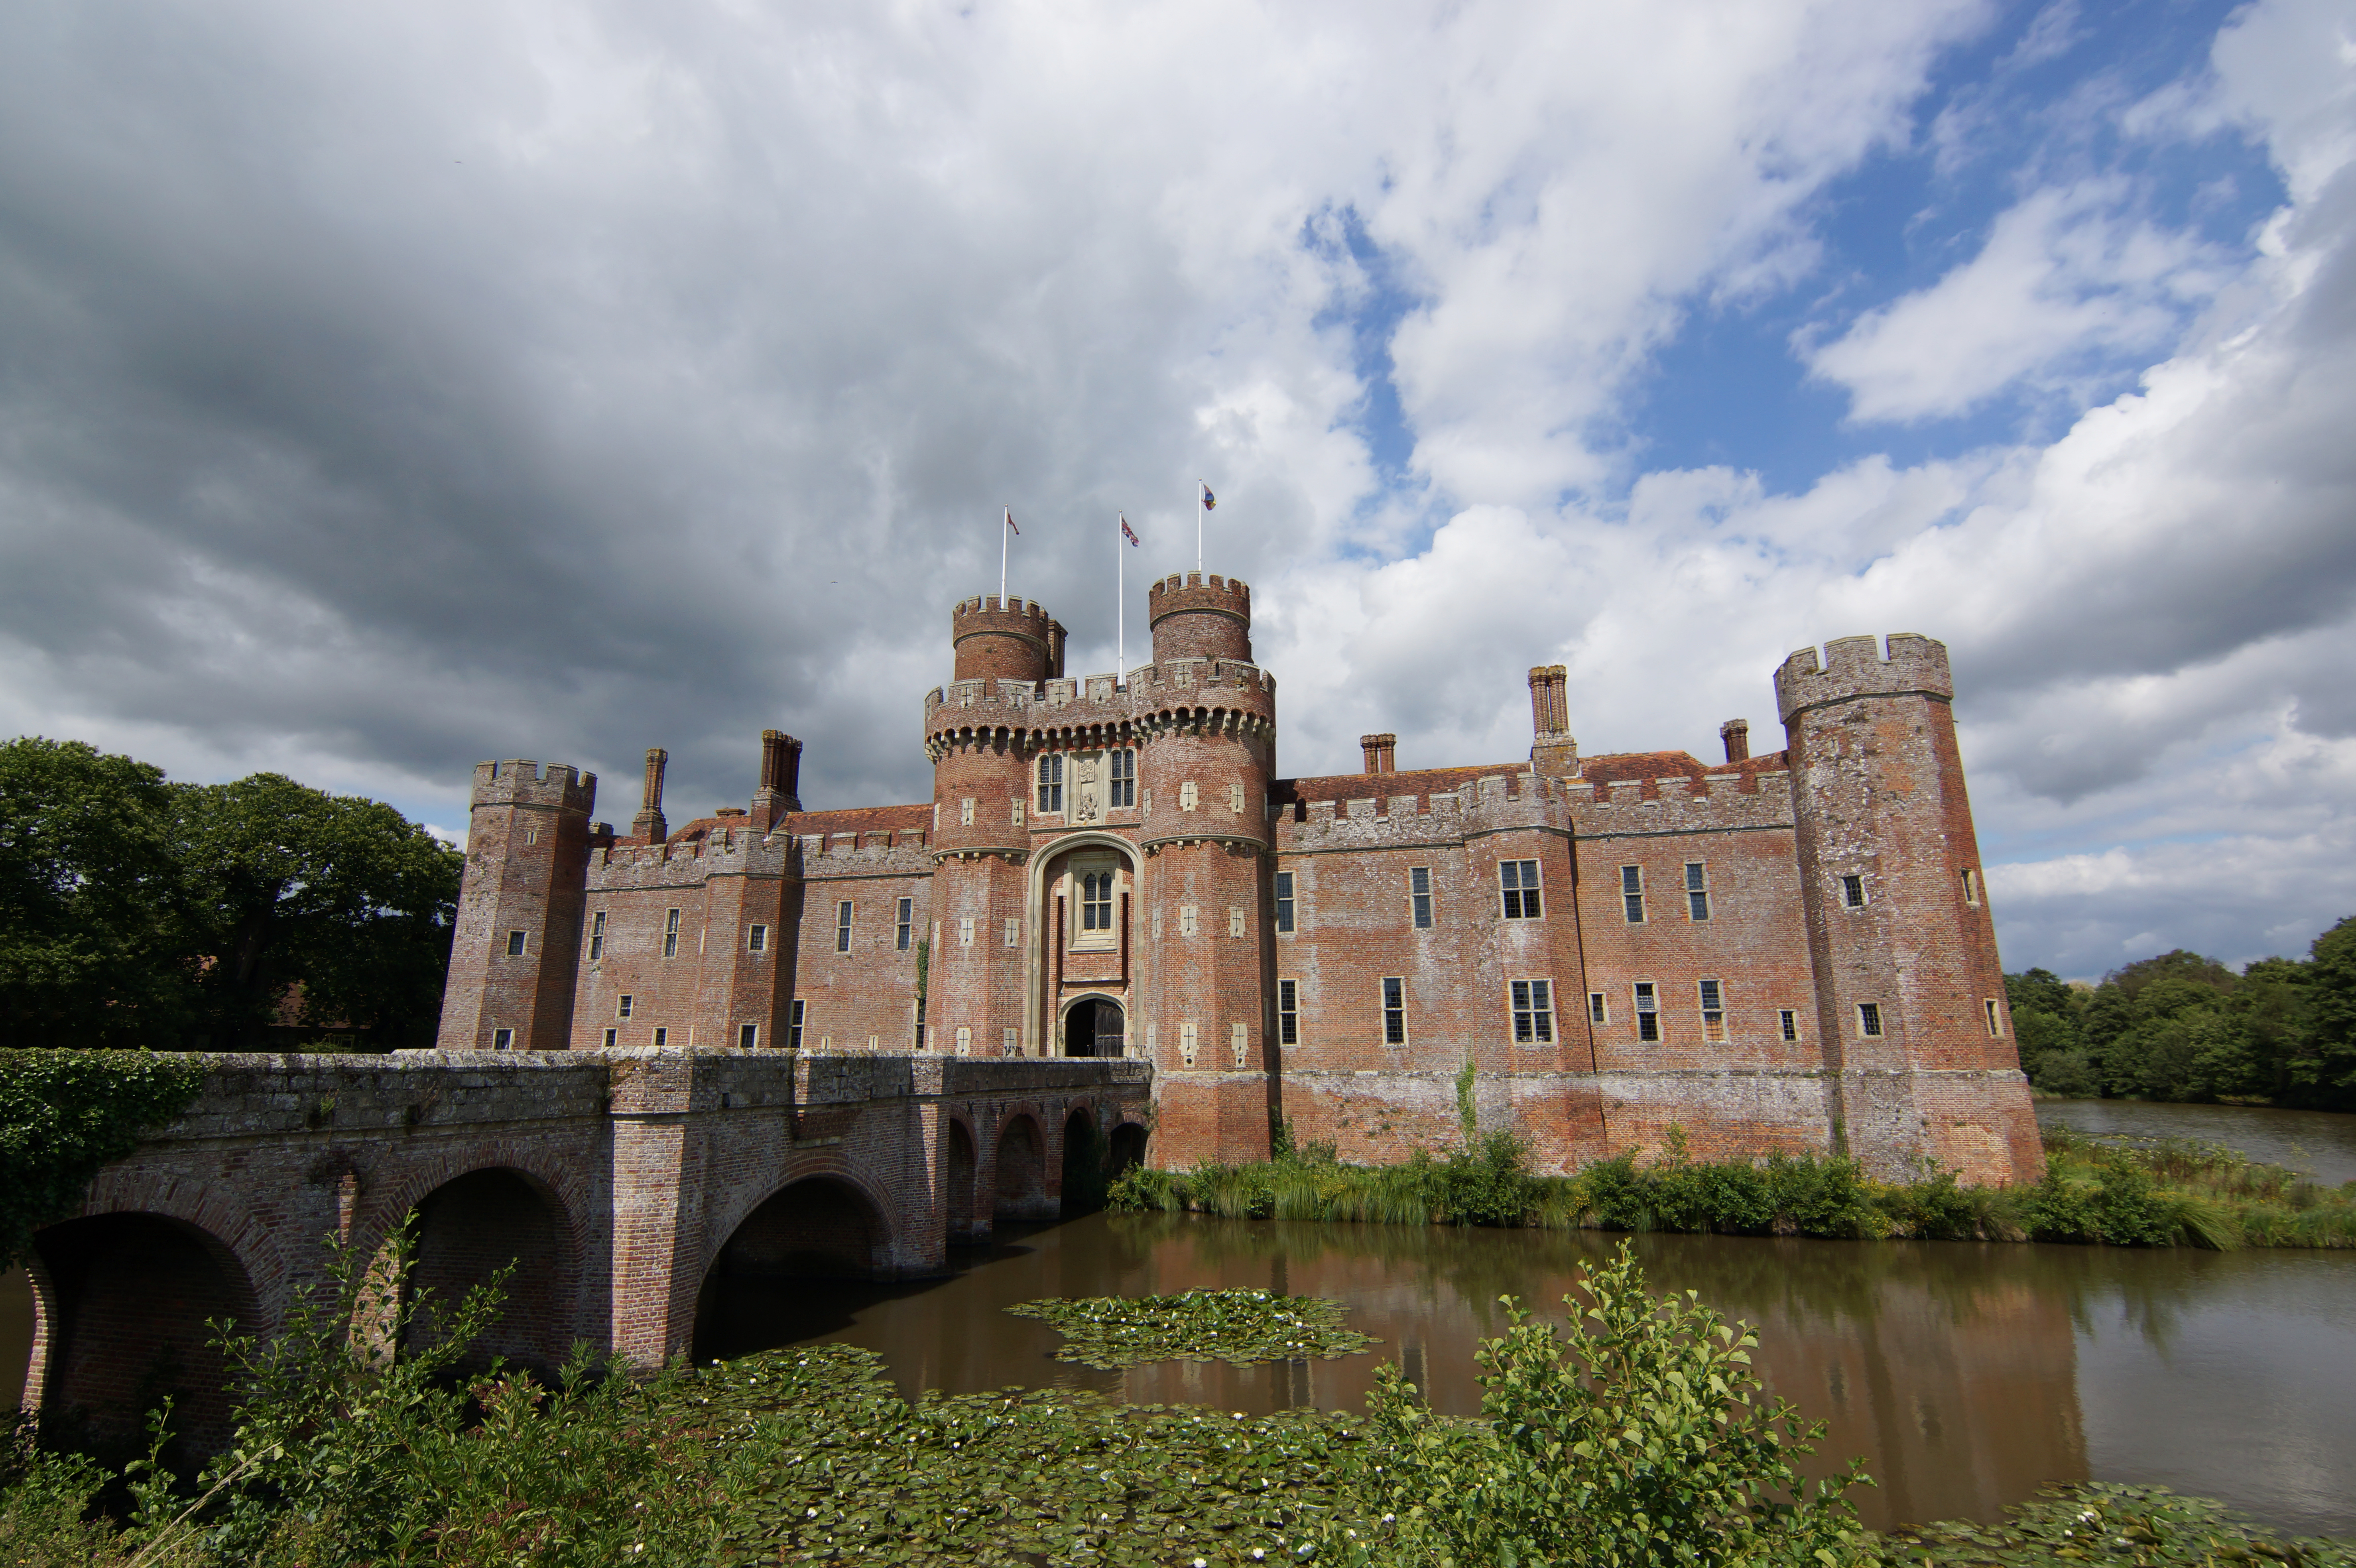 Herstmonceux Castle, Hailsham, East Sussex, England, UK